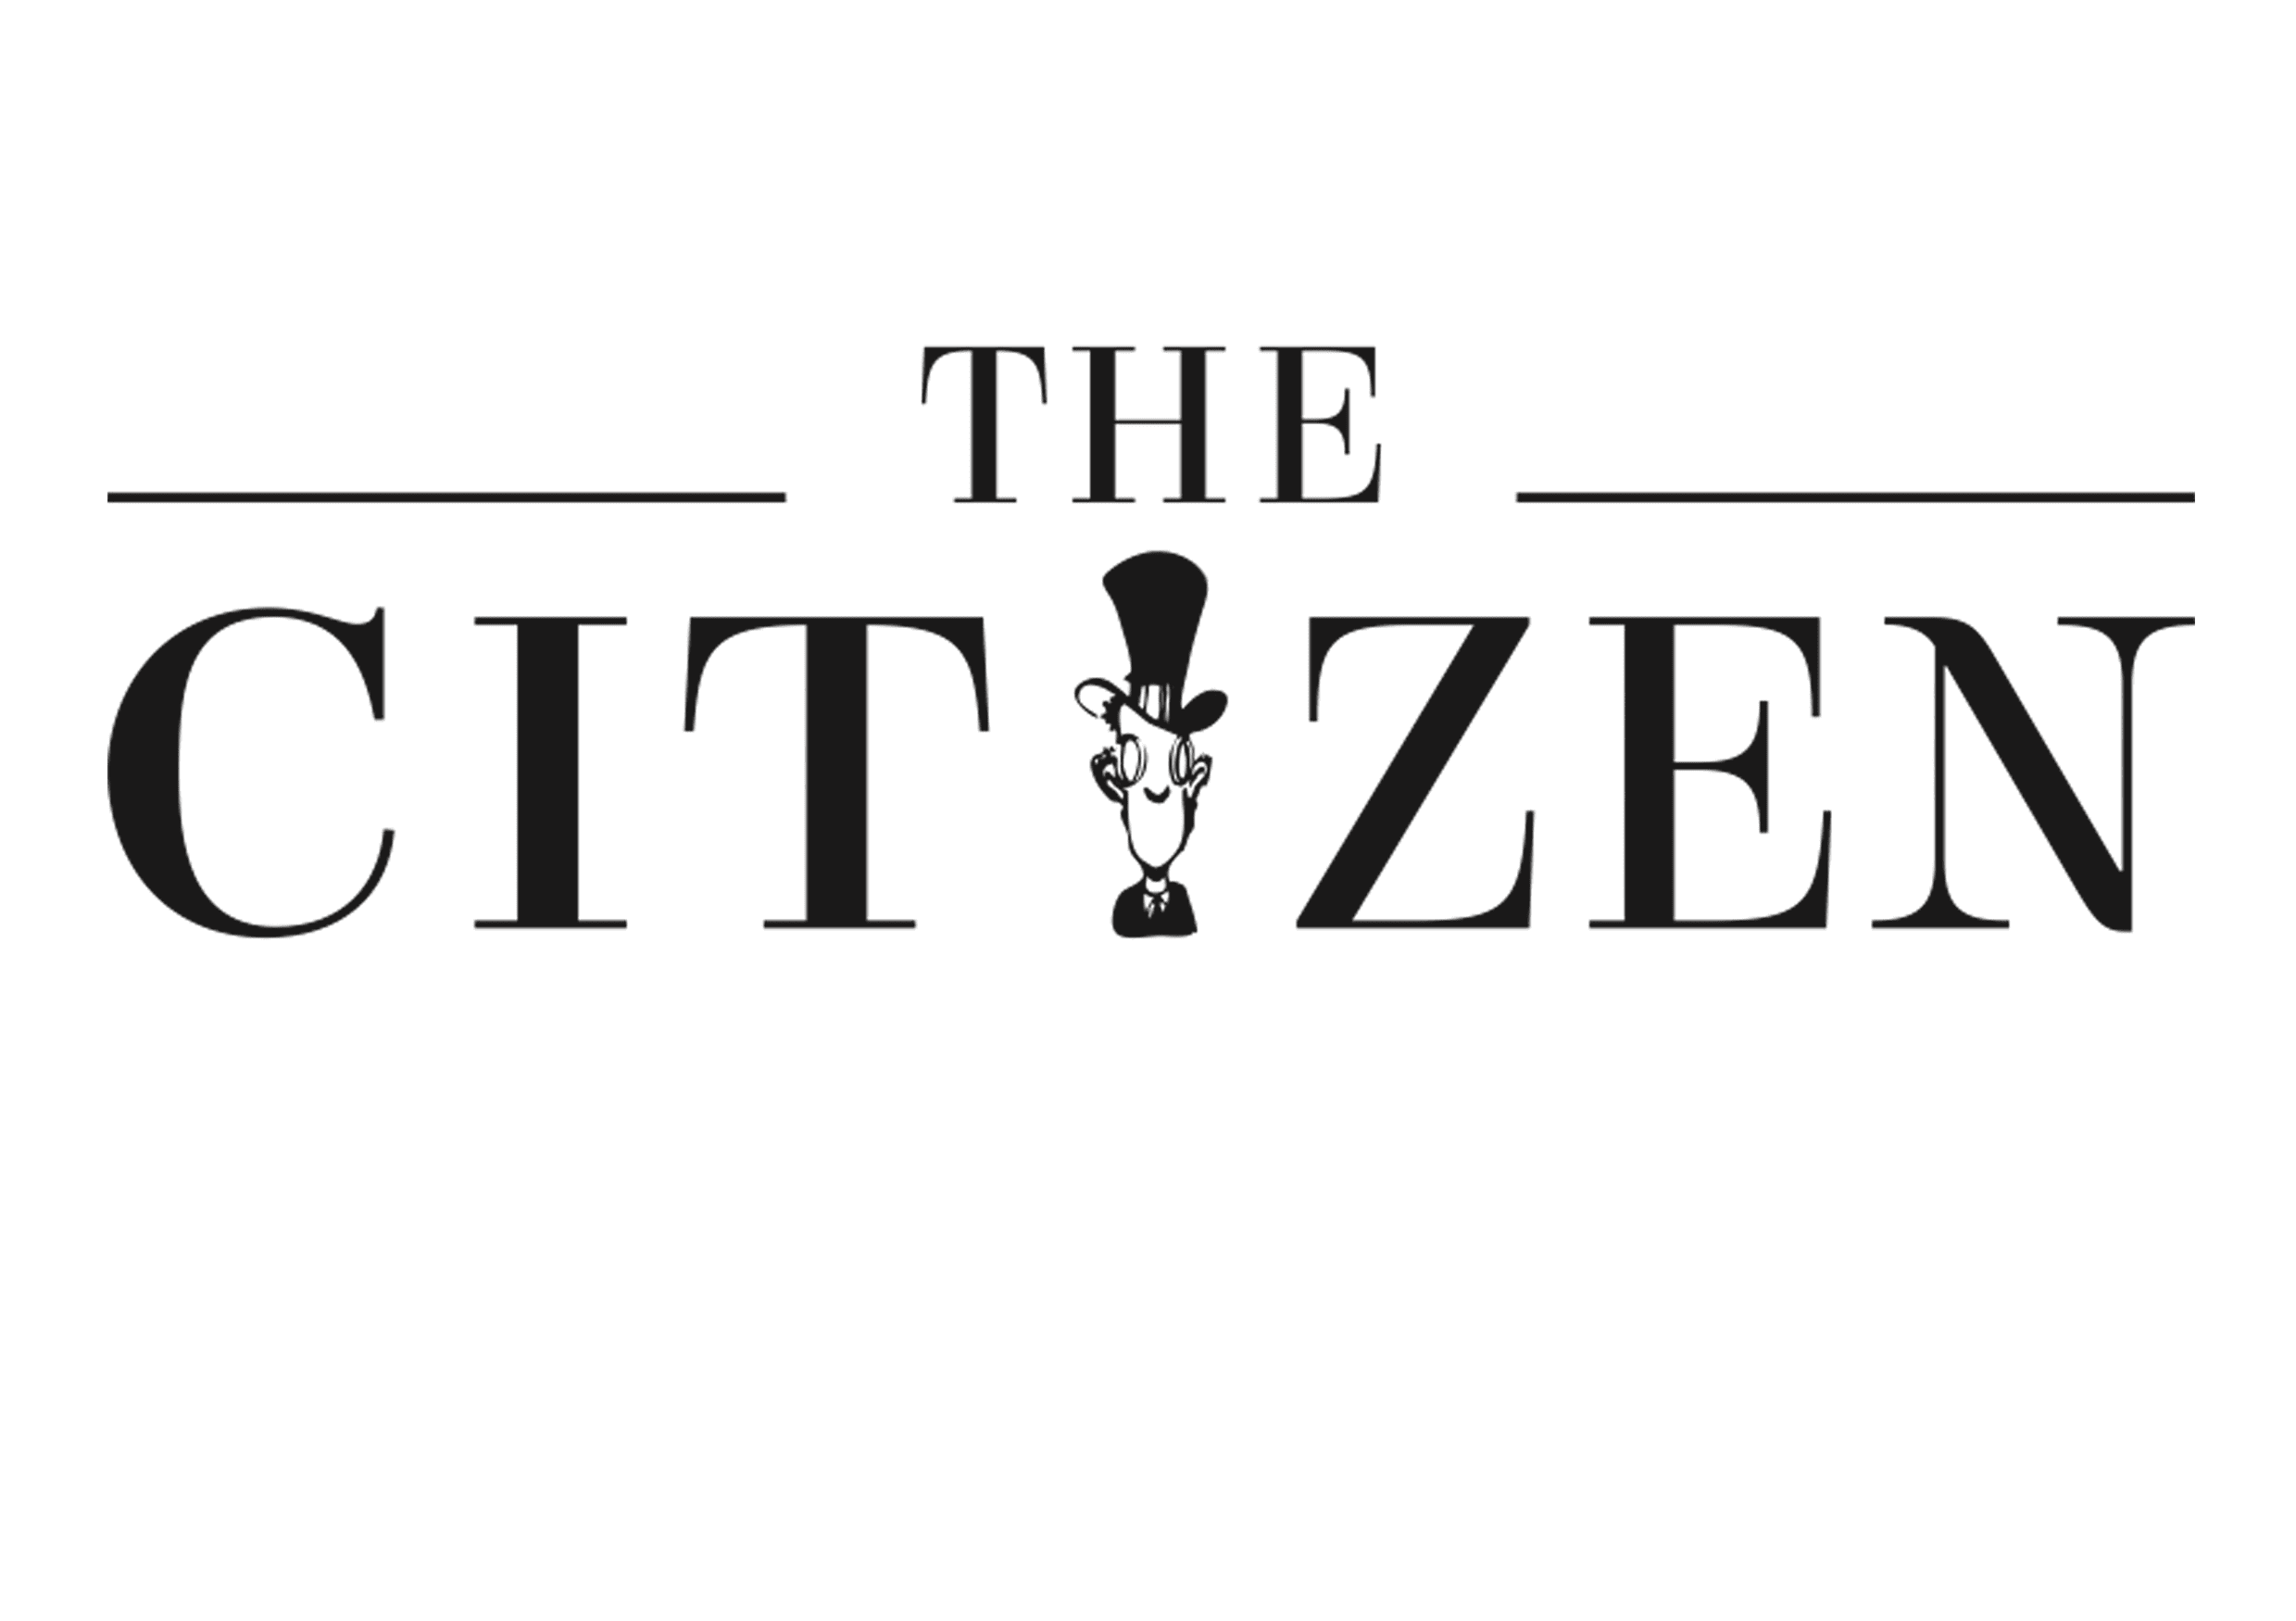 the-citizen